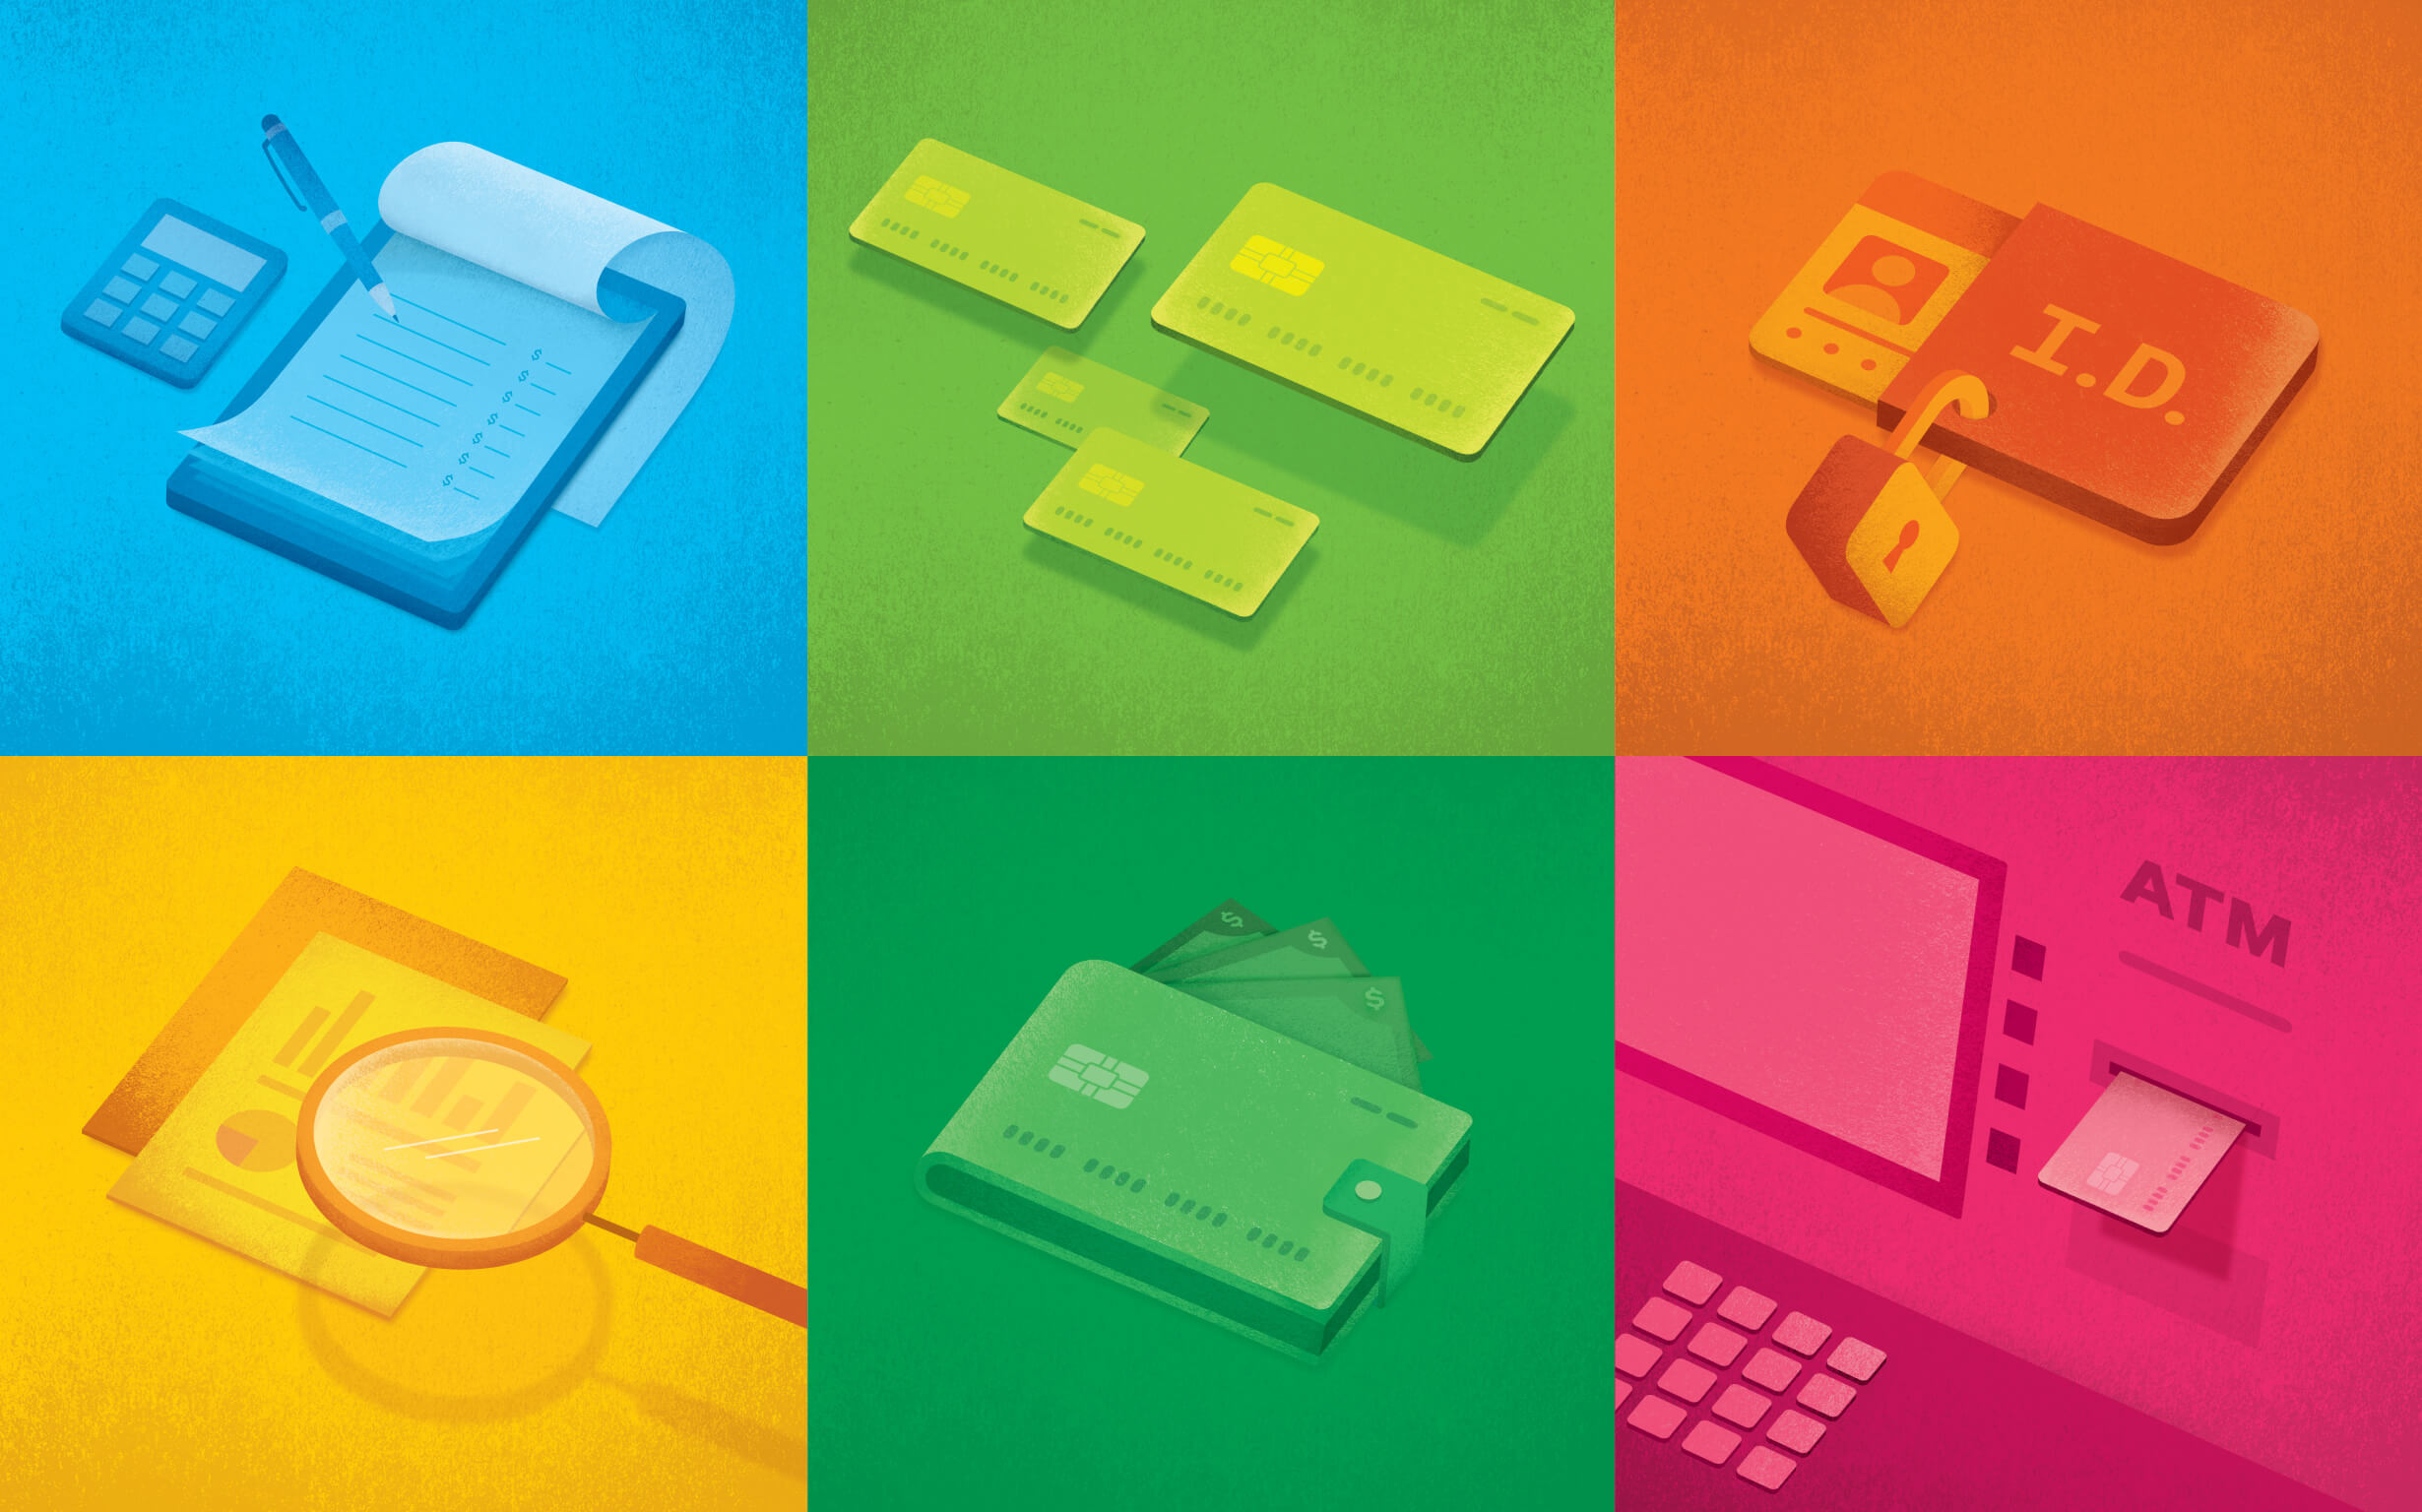 A set of 6 illustrations of financial tools in bold colors that appear on the Practical Money Skills money guides.